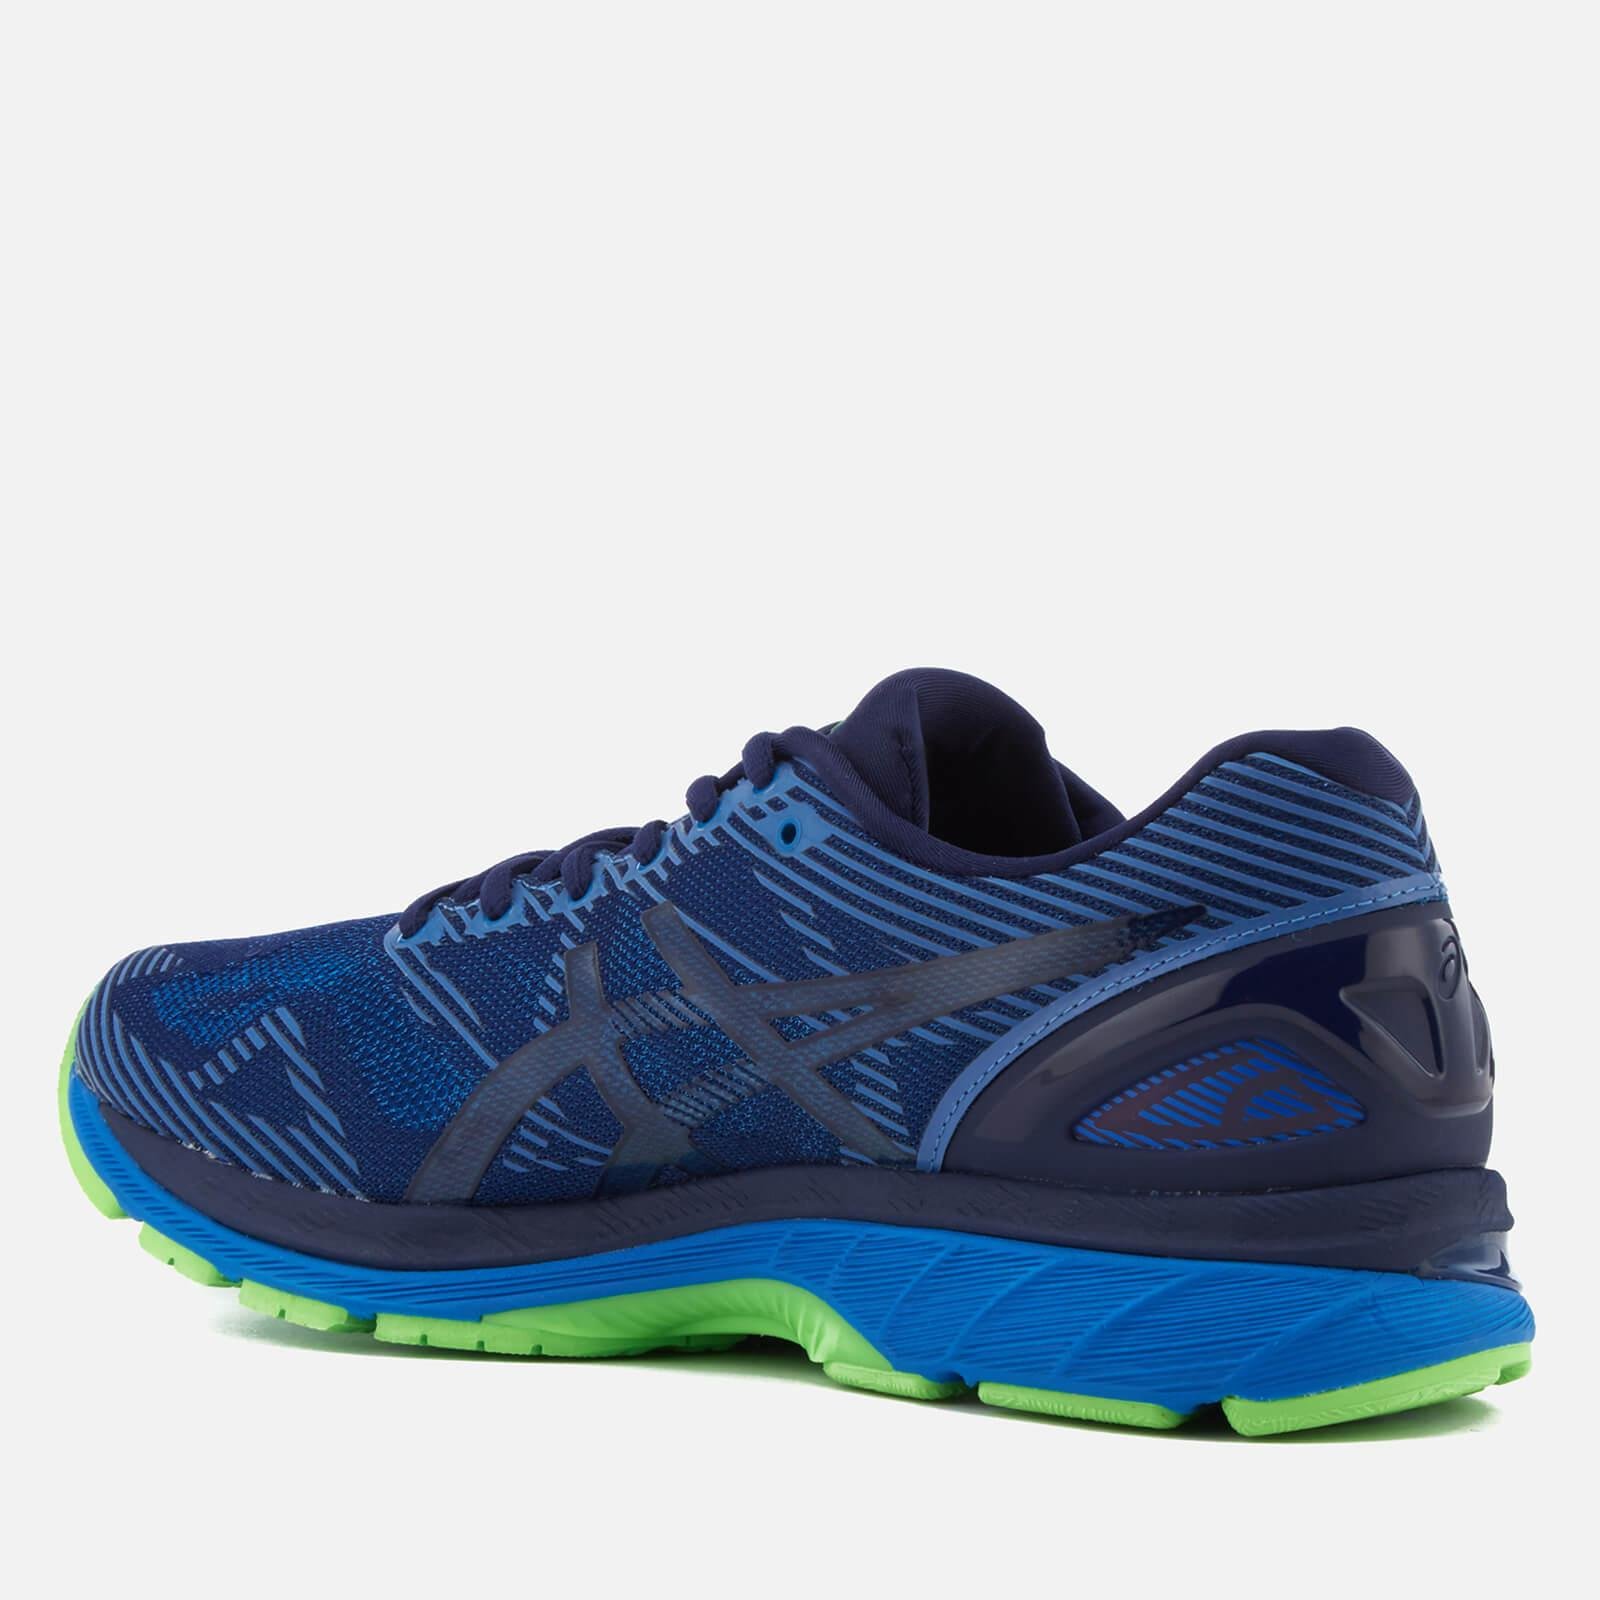 lyst asics gel nimbus 19 lite show trainers in blue for men. Black Bedroom Furniture Sets. Home Design Ideas